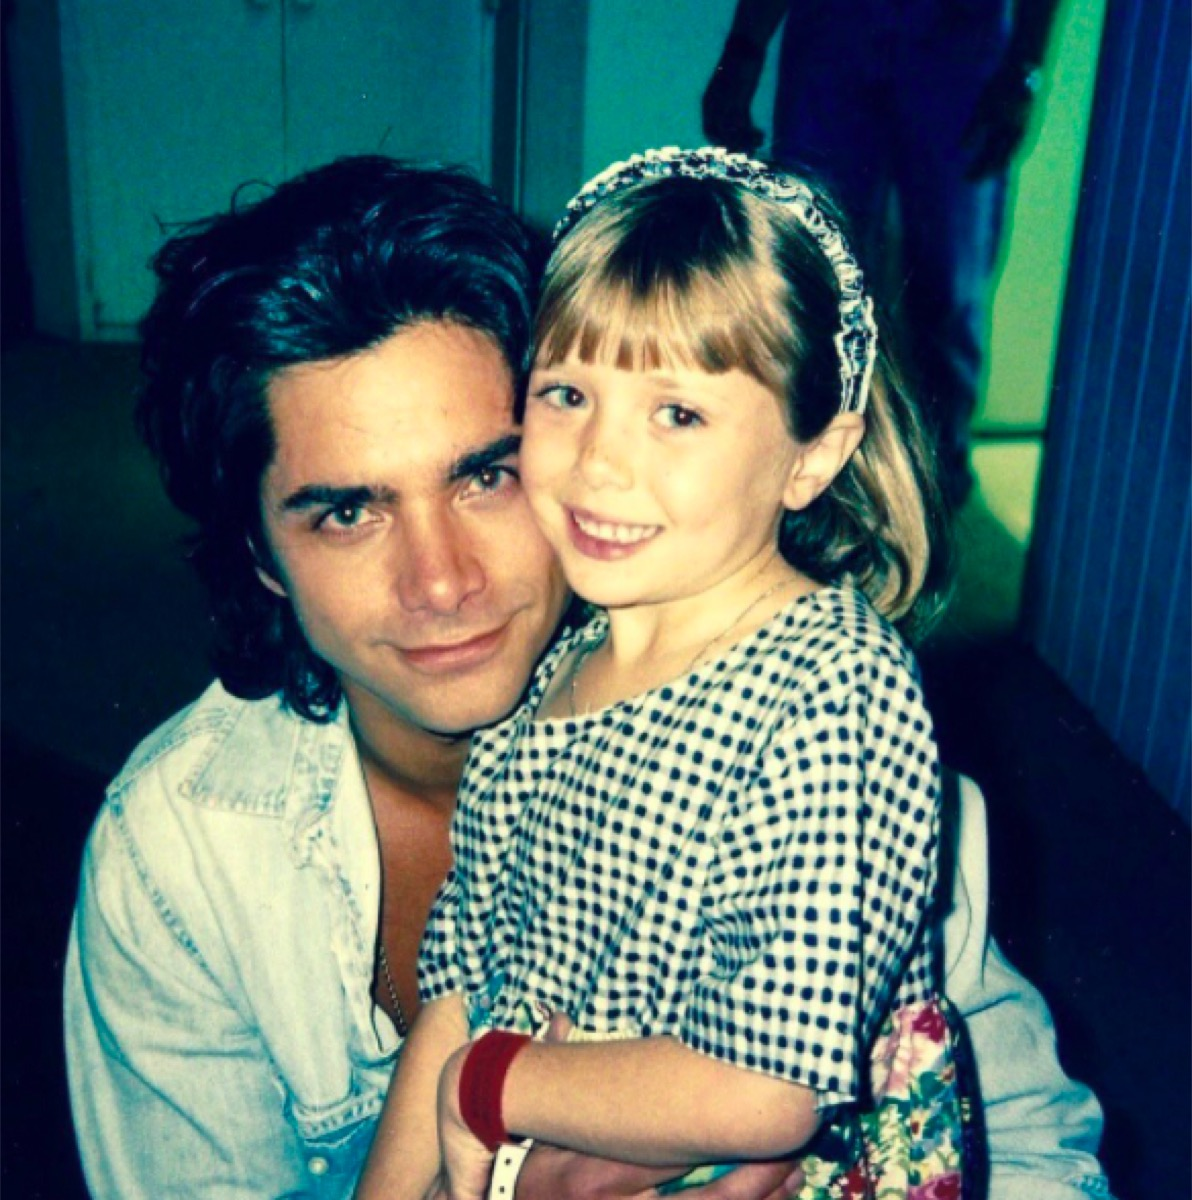 John Stamos and Elizabeth Olsen in an old photo posted to his Instagram